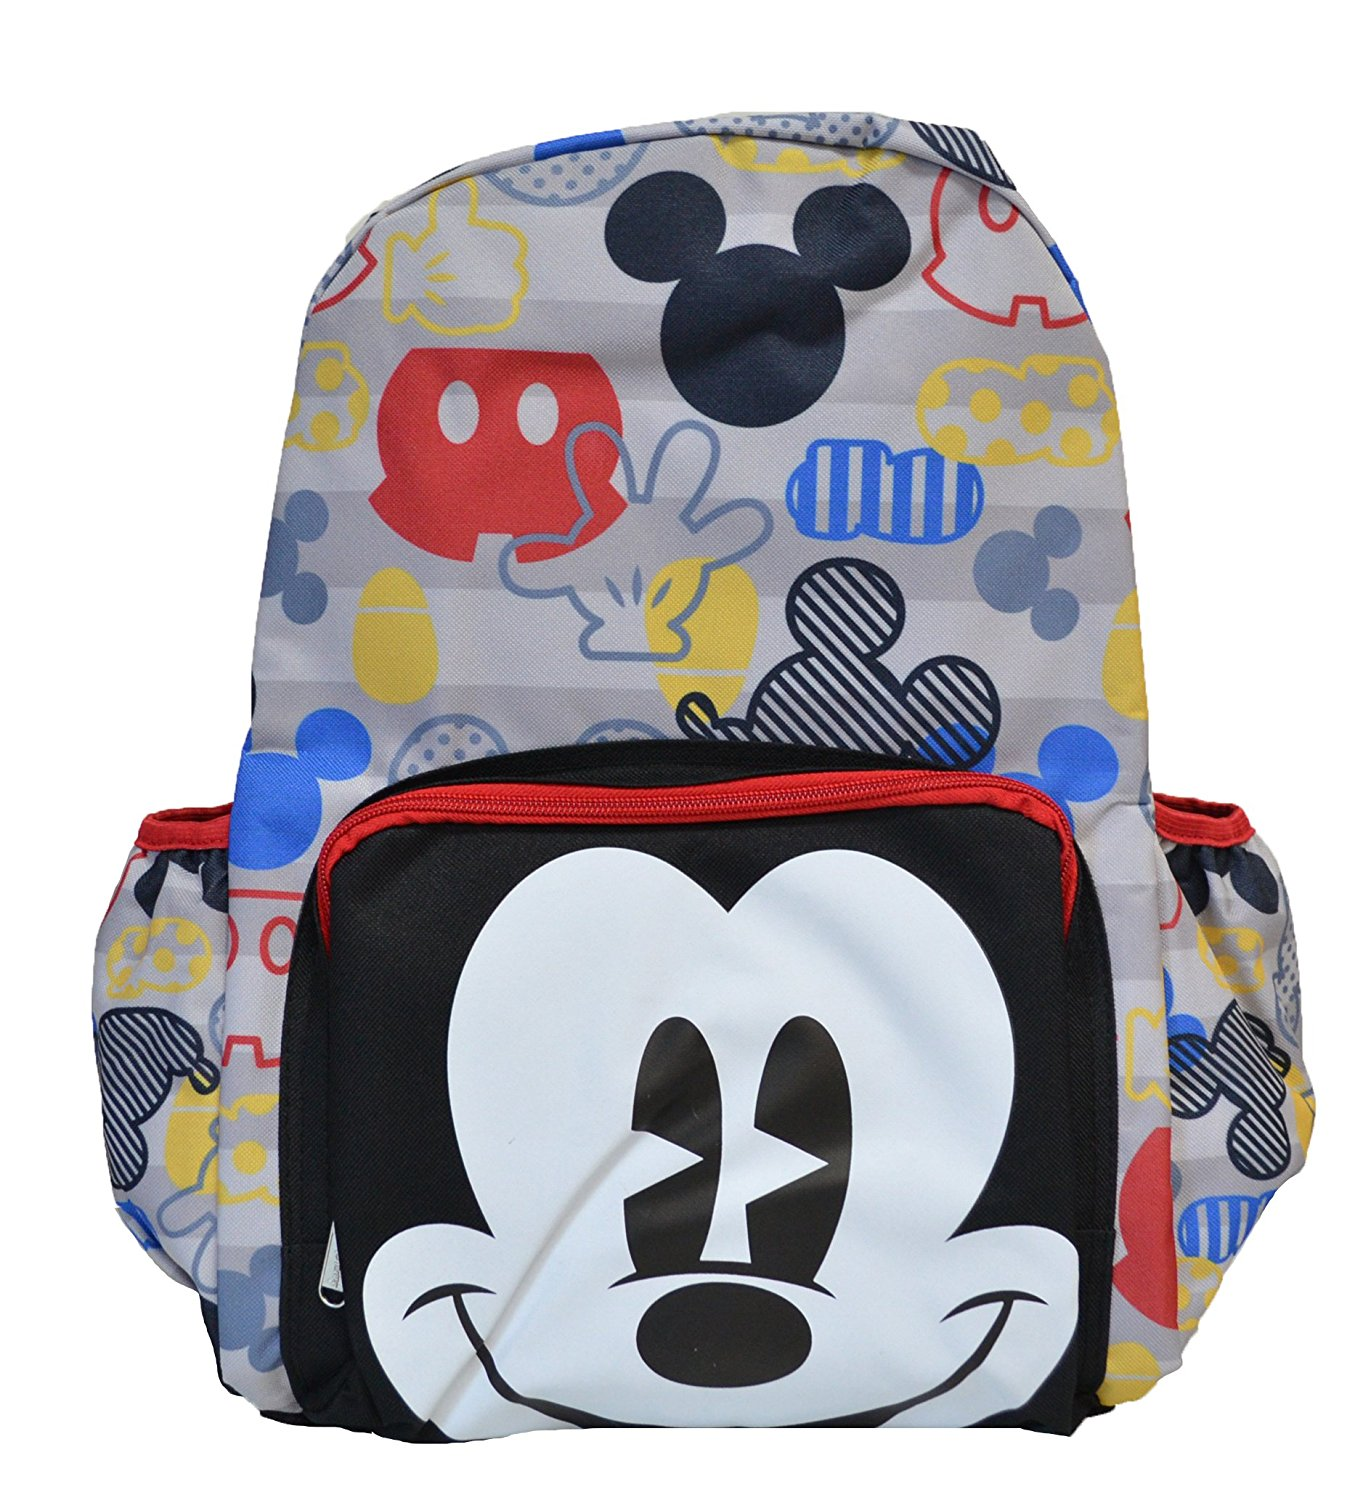 Classic Mickey Mouse Face and All Over Print Mickey Symbols 16 In. Backpack